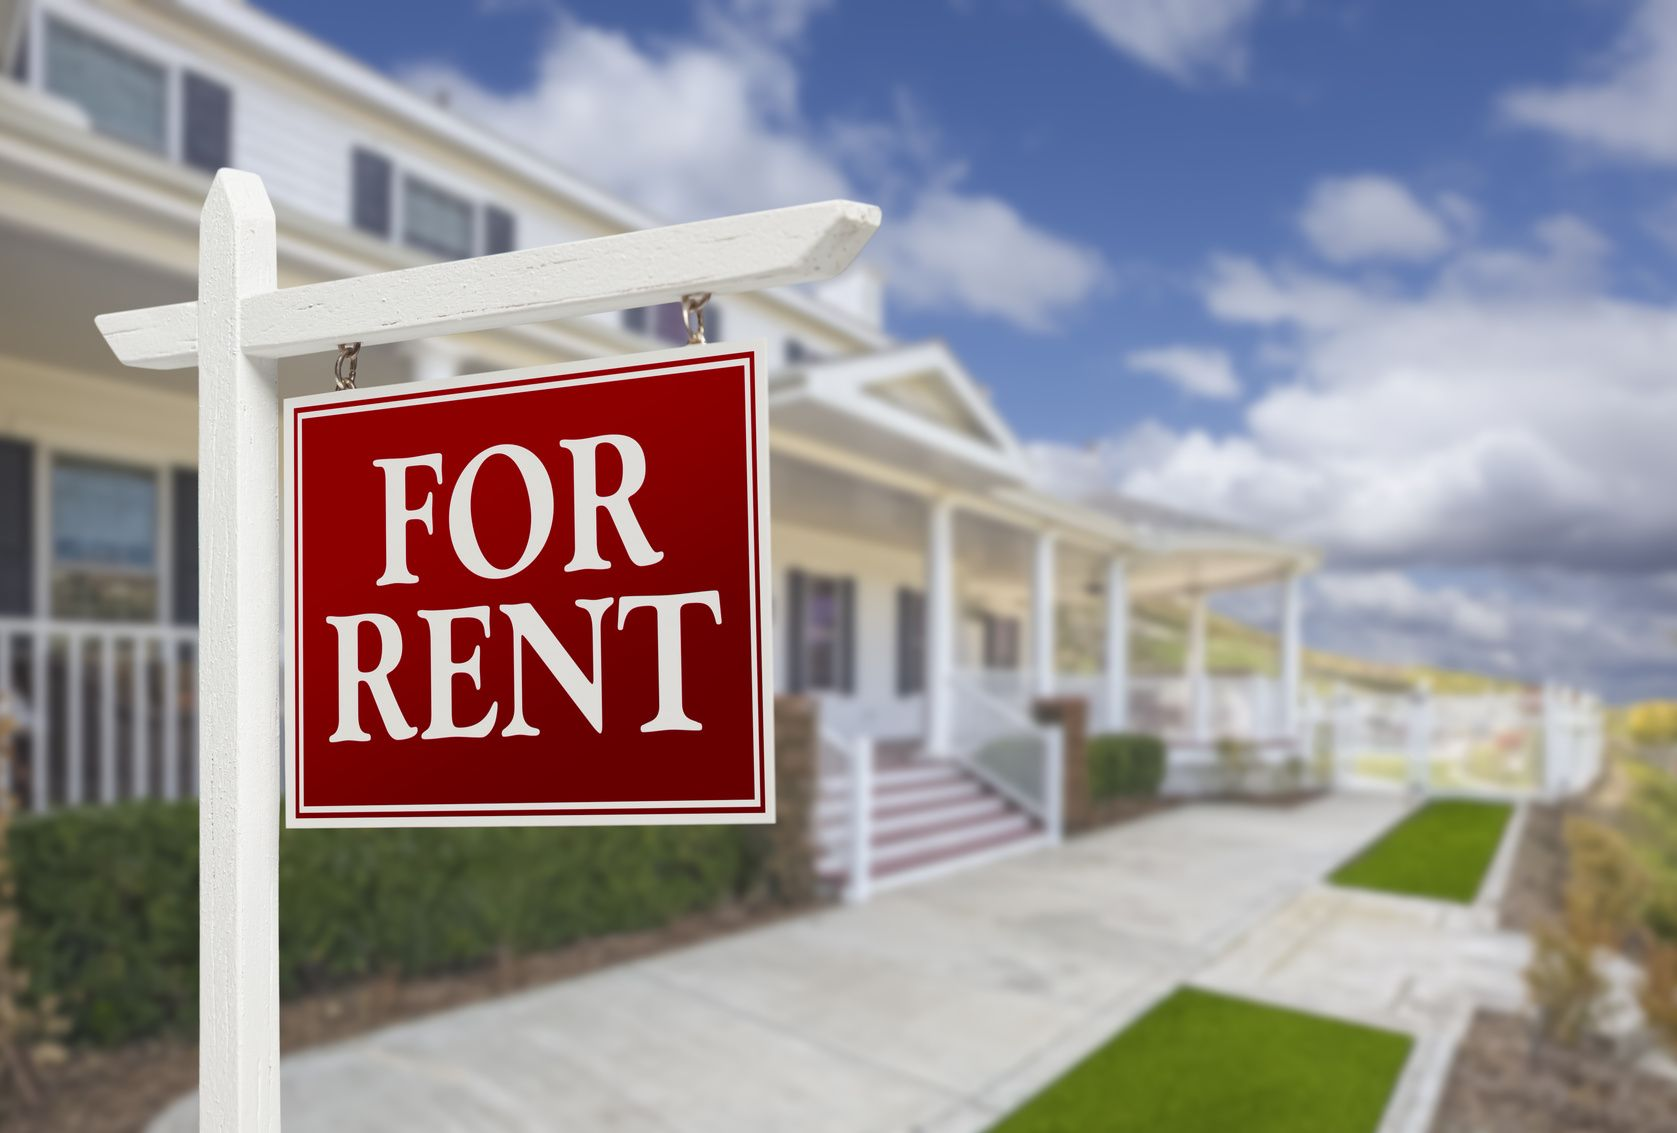 Discount Renters Insurance For Rental Homes Apartments Condos